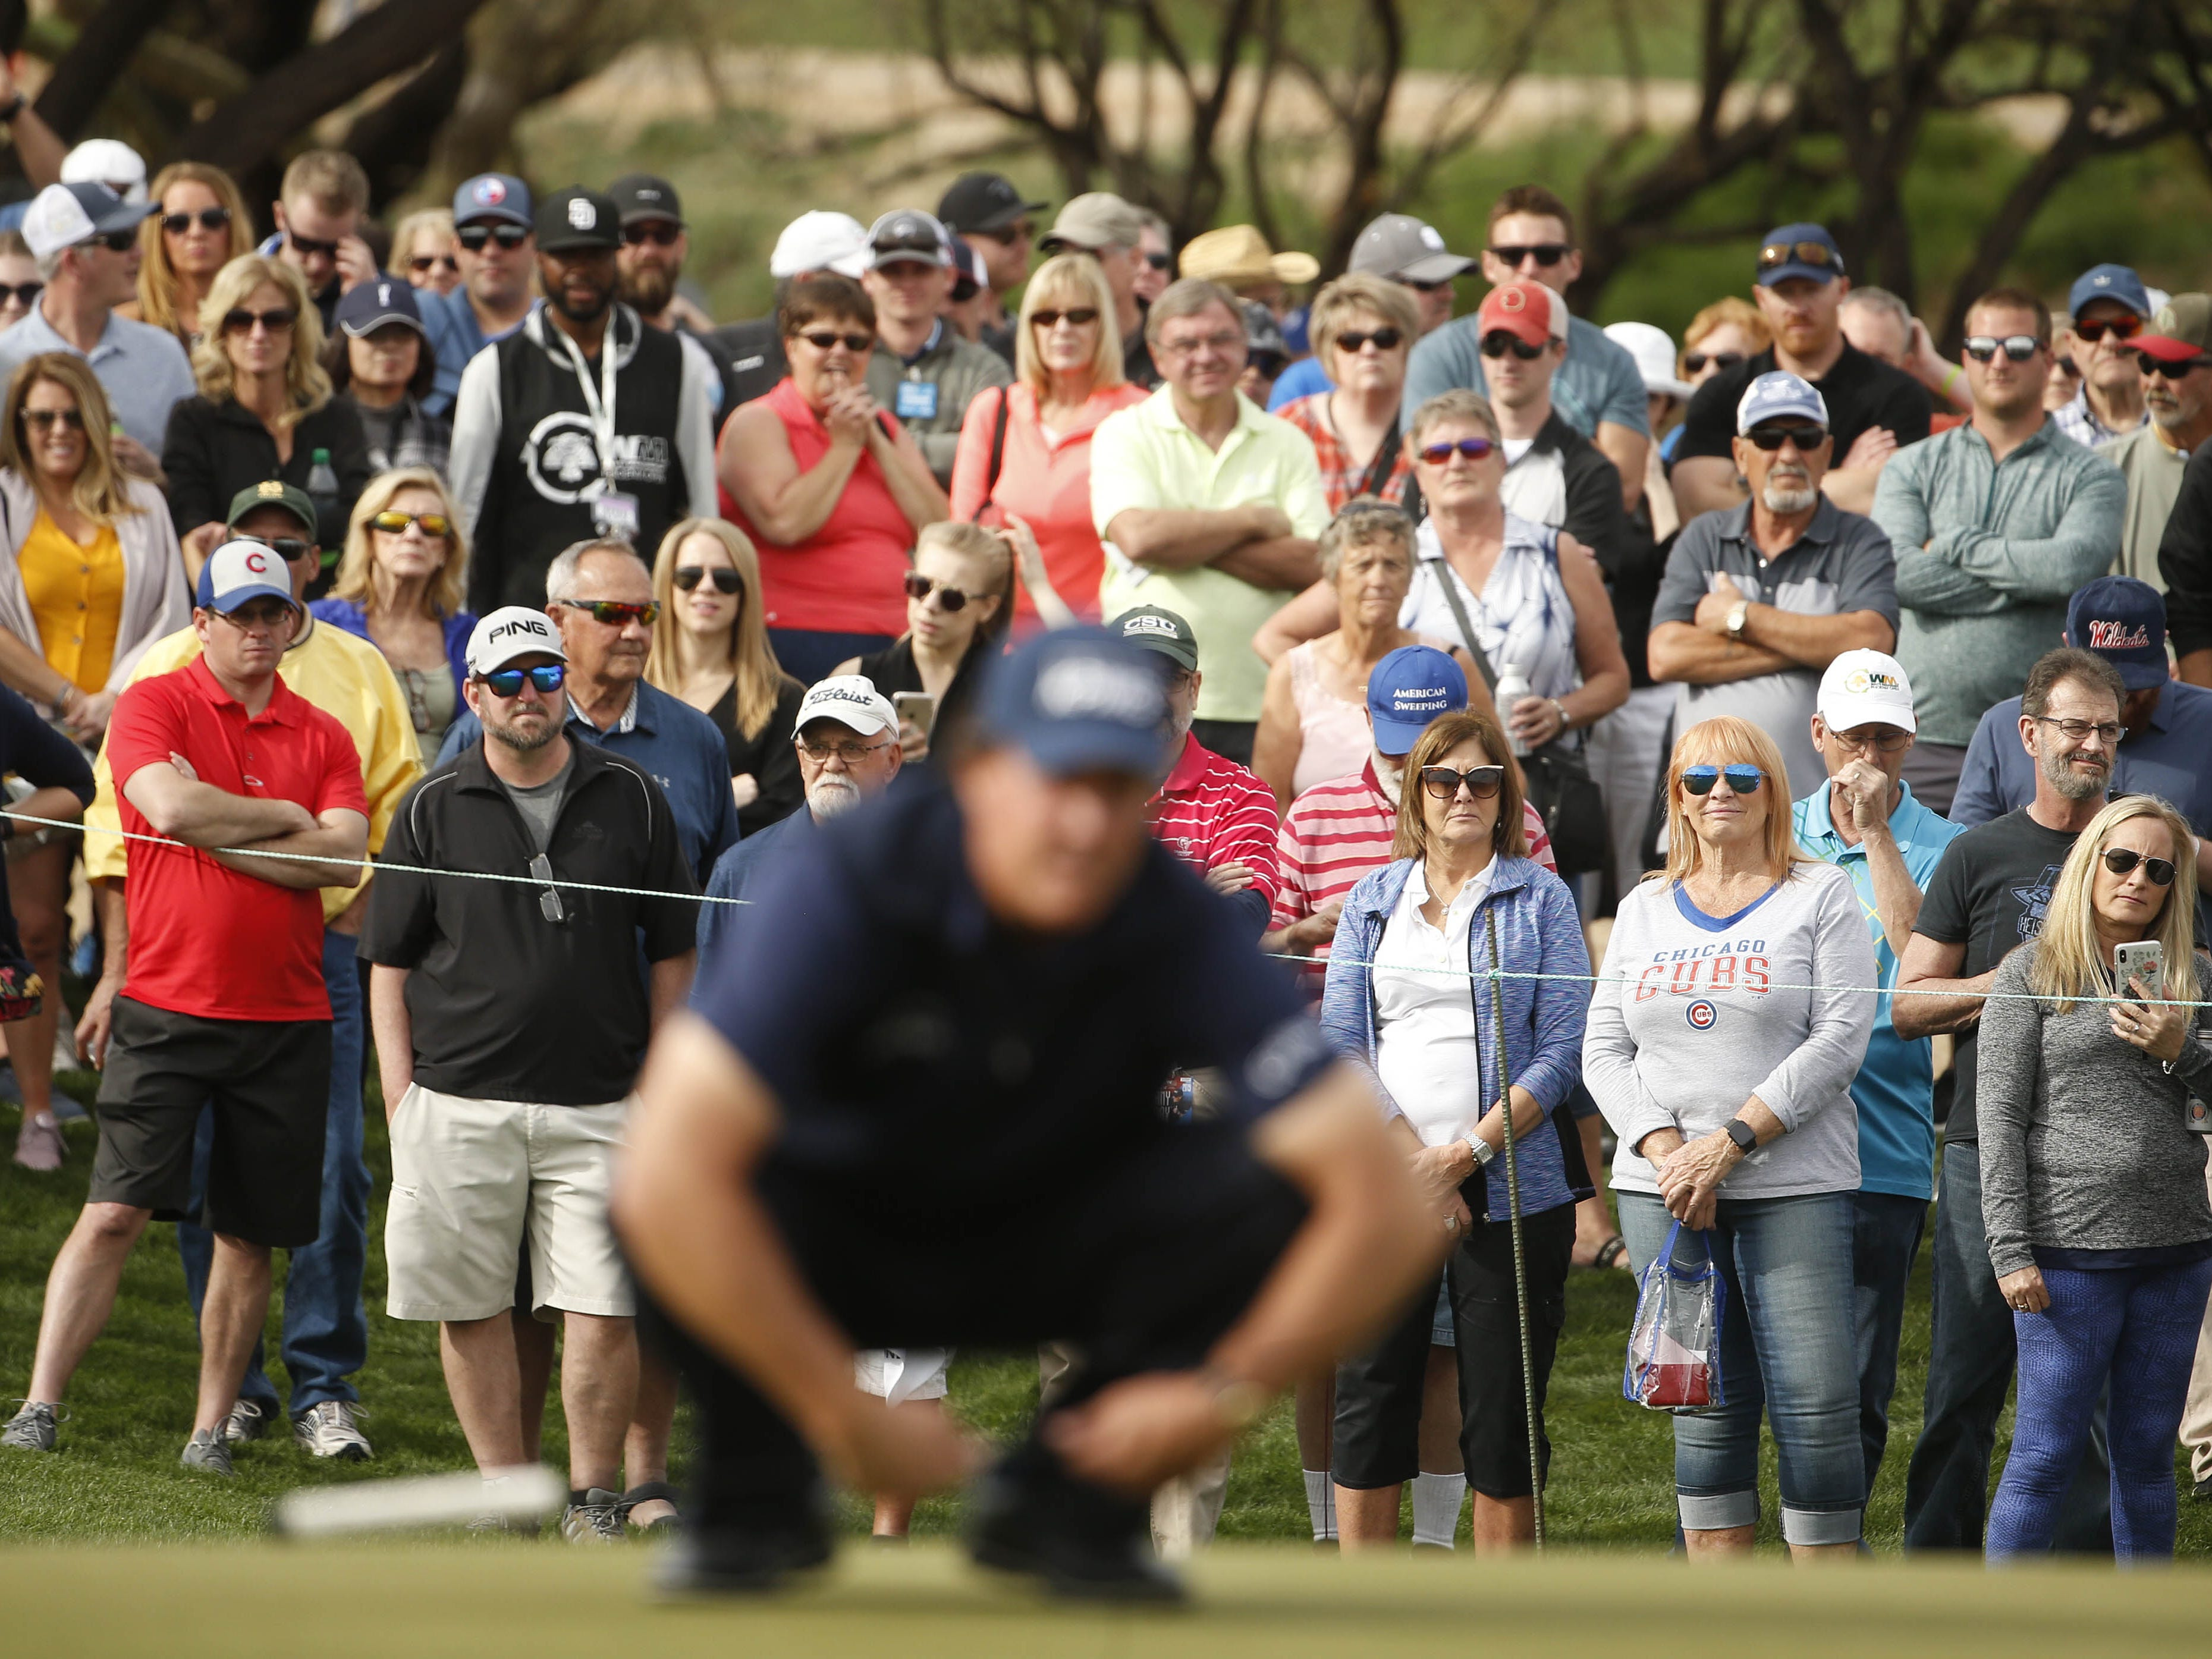 Fans watch Phil Mickelson line up a putt on the 9th green during first round of the Waste Management Phoenix Open at TPC Scottsdale in Scottsdale, Ariz. on January 31, 2019.